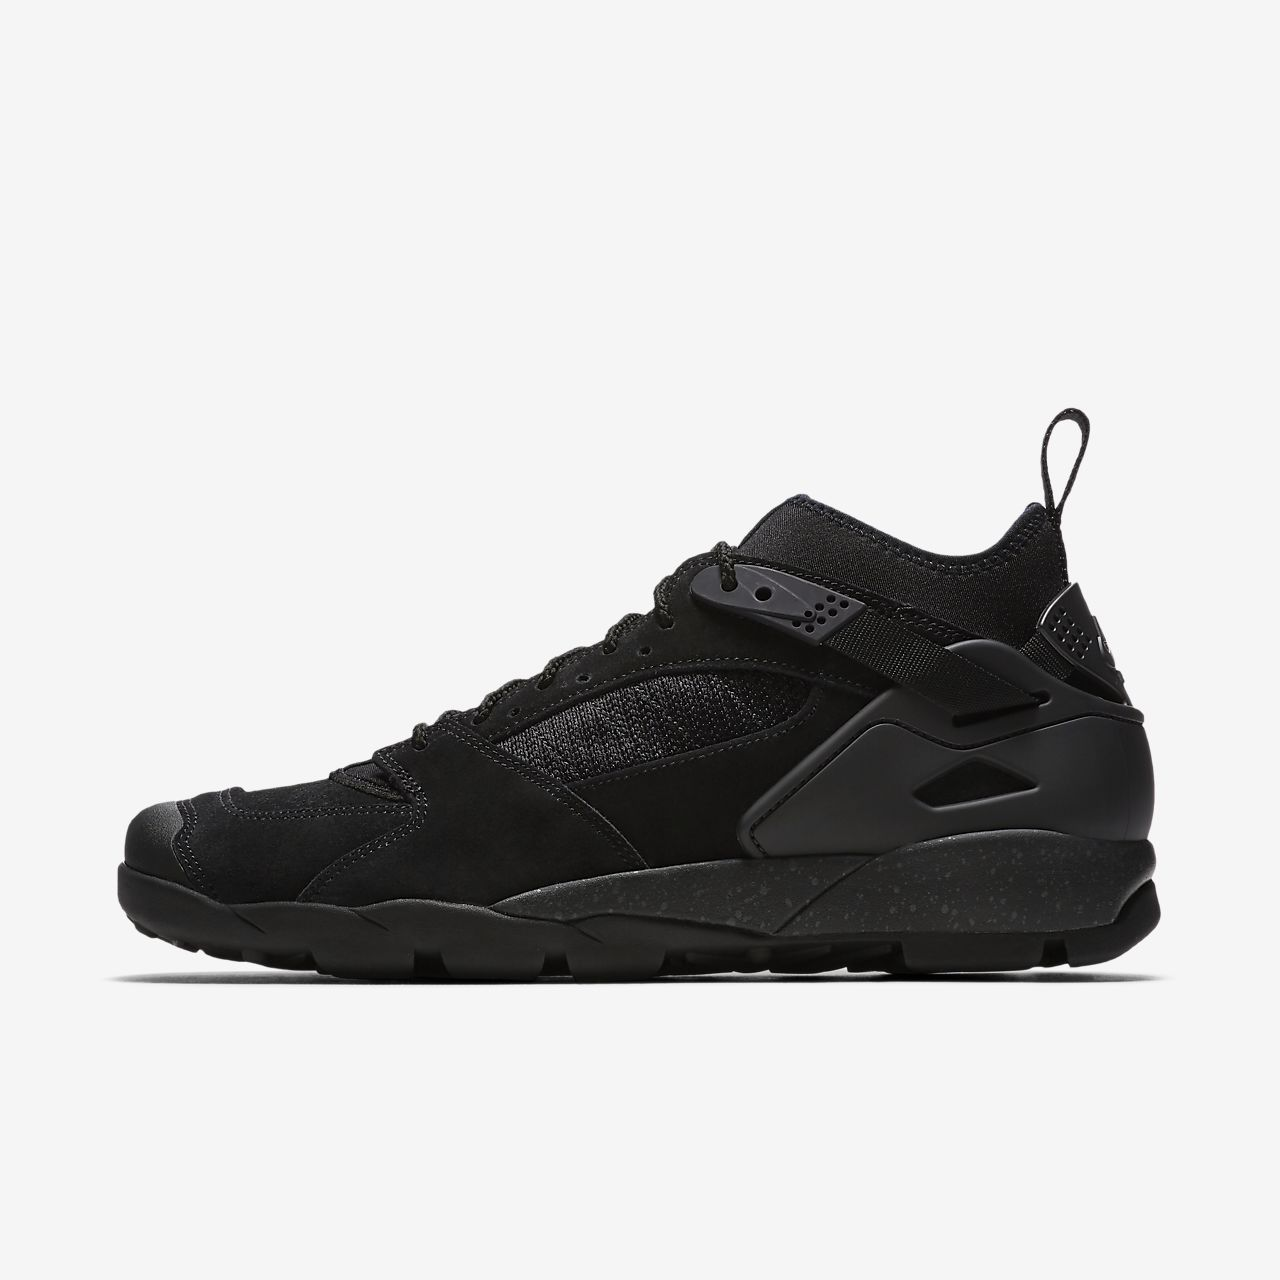 Chaussure Nike ACG Air Revaderchi pour Homme